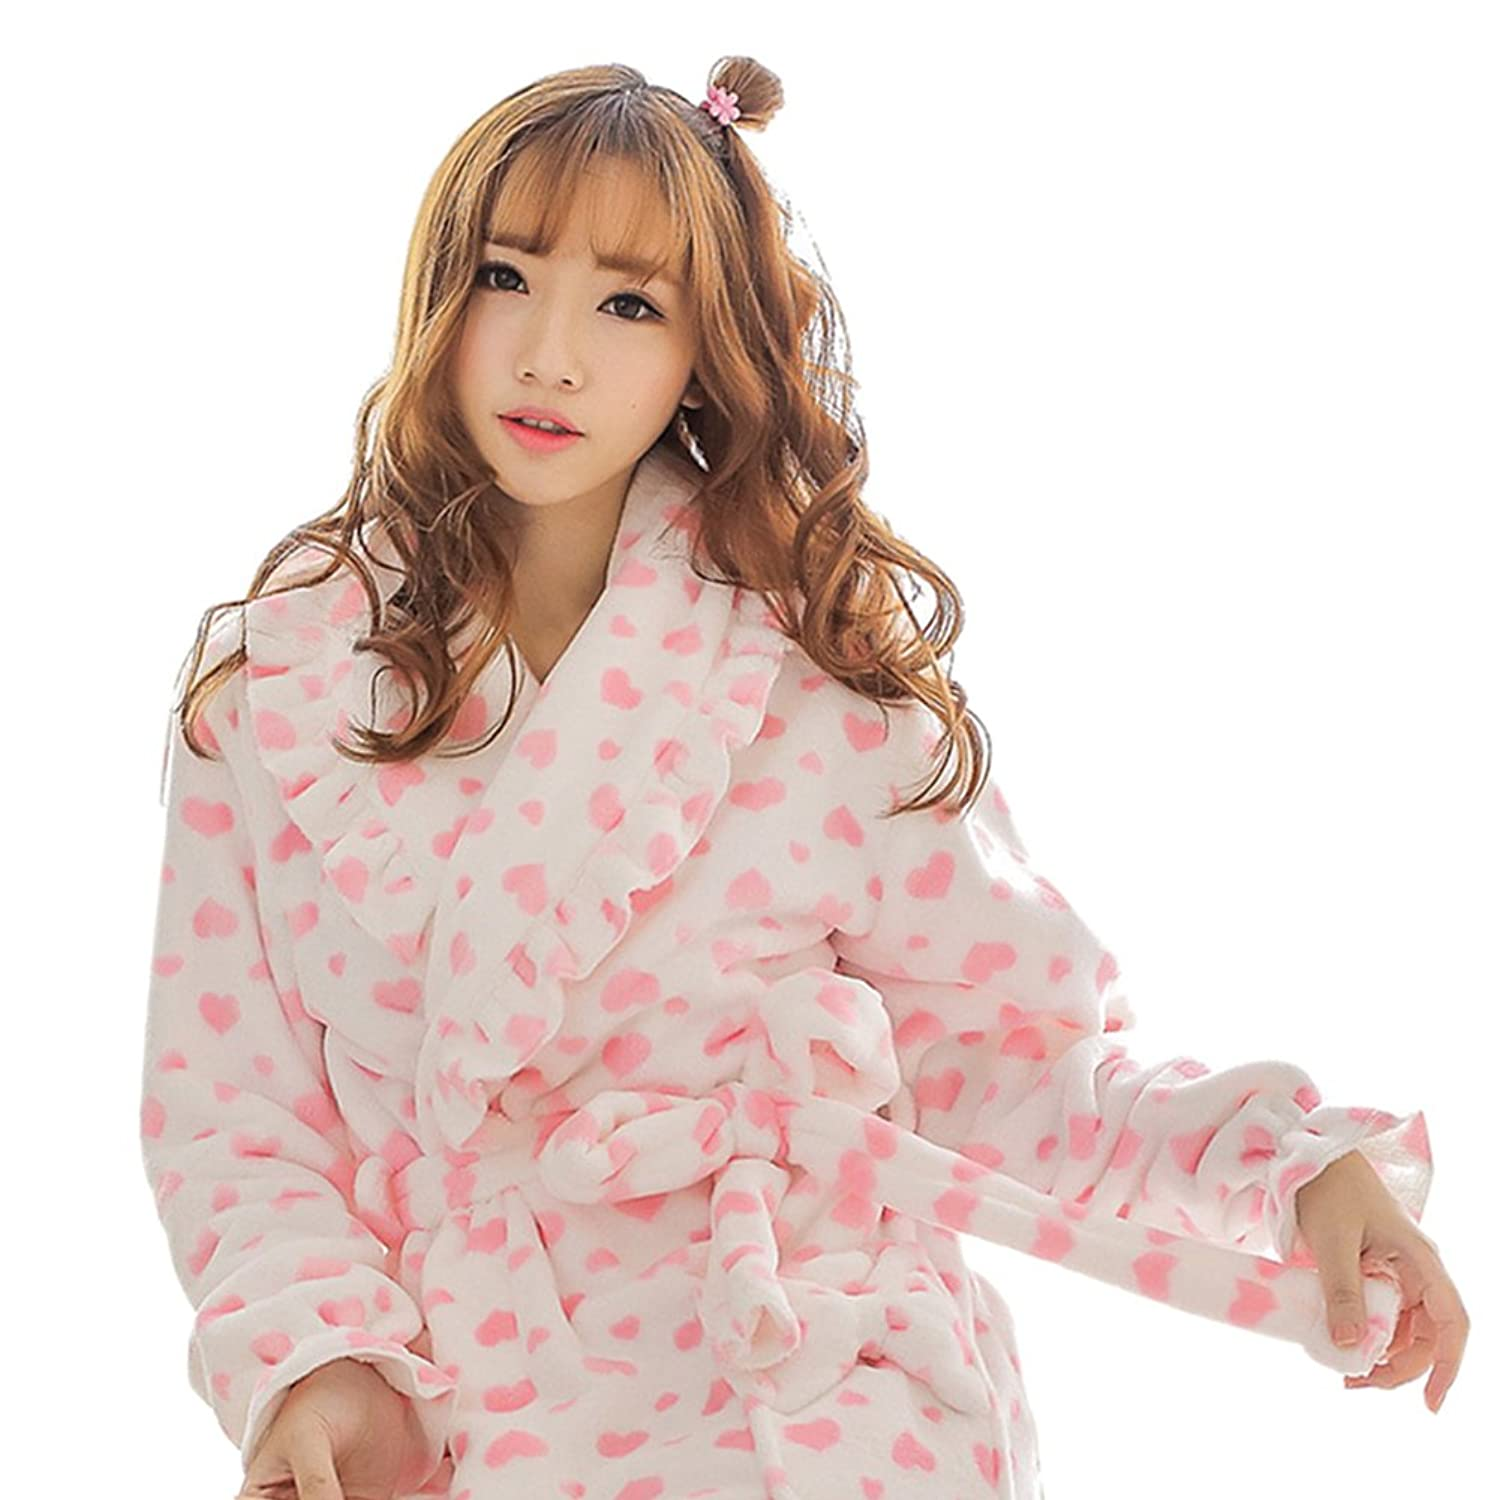 LifeWheel Flannel Nightgown Lace Pajama Tops Long Sleeve Home Clothing Autumn Robe Winter Flounced Sleepwear Coral Cashmere Bathrobes